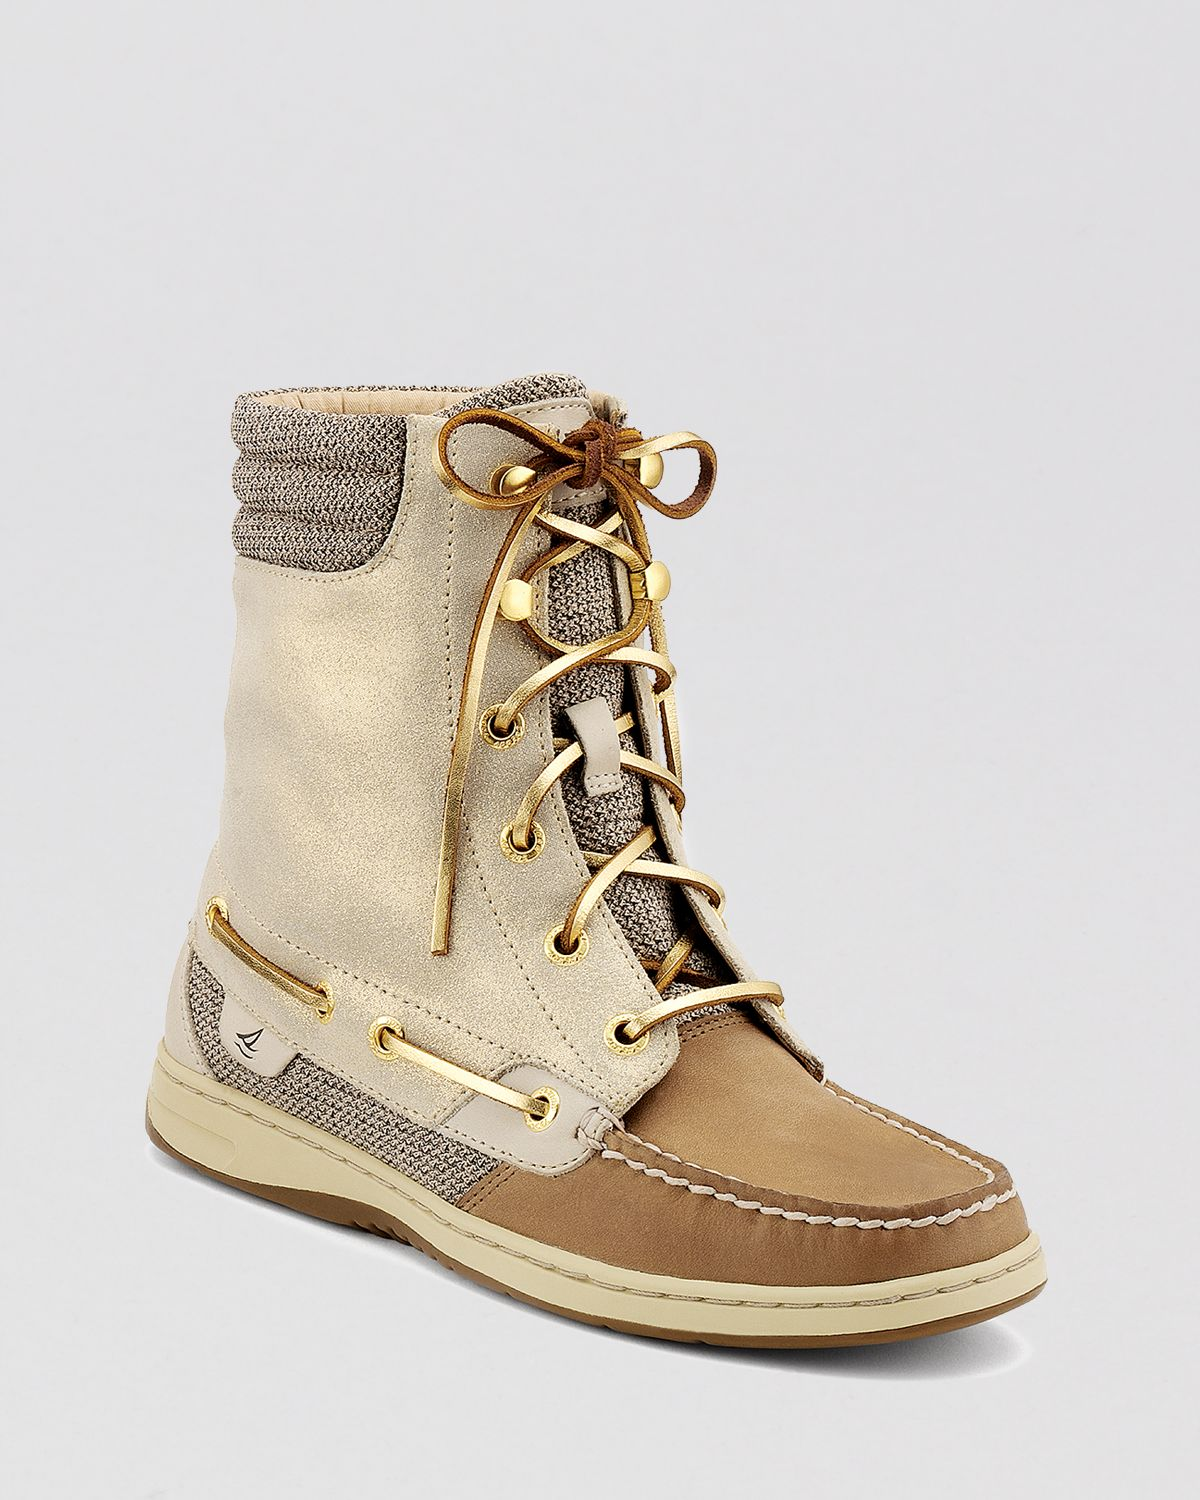 192f38b60bff Lyst - Sperry Top-Sider Lace Up Boots Hikerfish in Natural